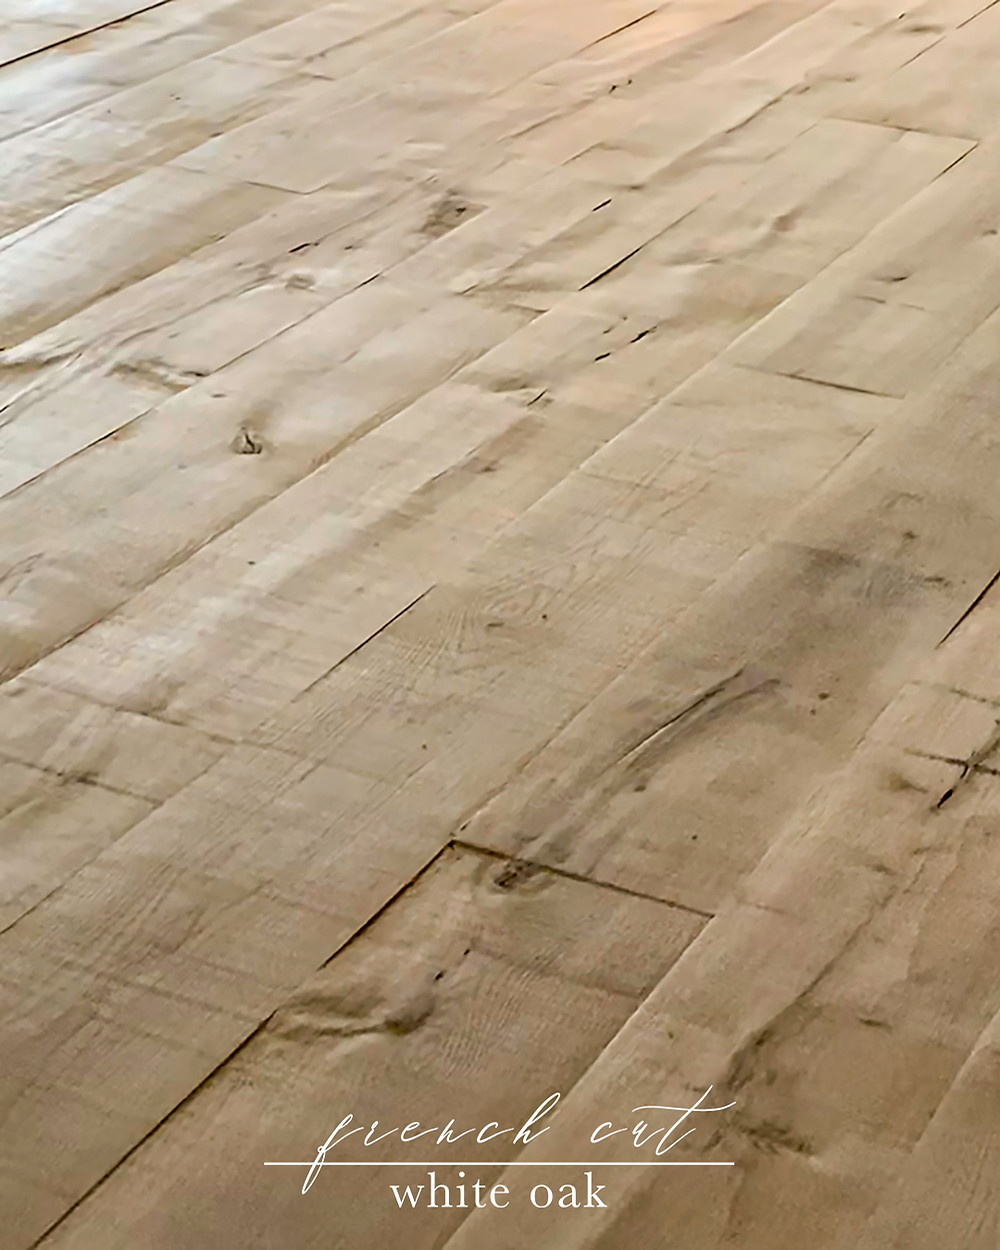 Natural Face is Hardwood Design Company's proprietary aged process which creates an old world style hardwood floor rich in texture and movement.